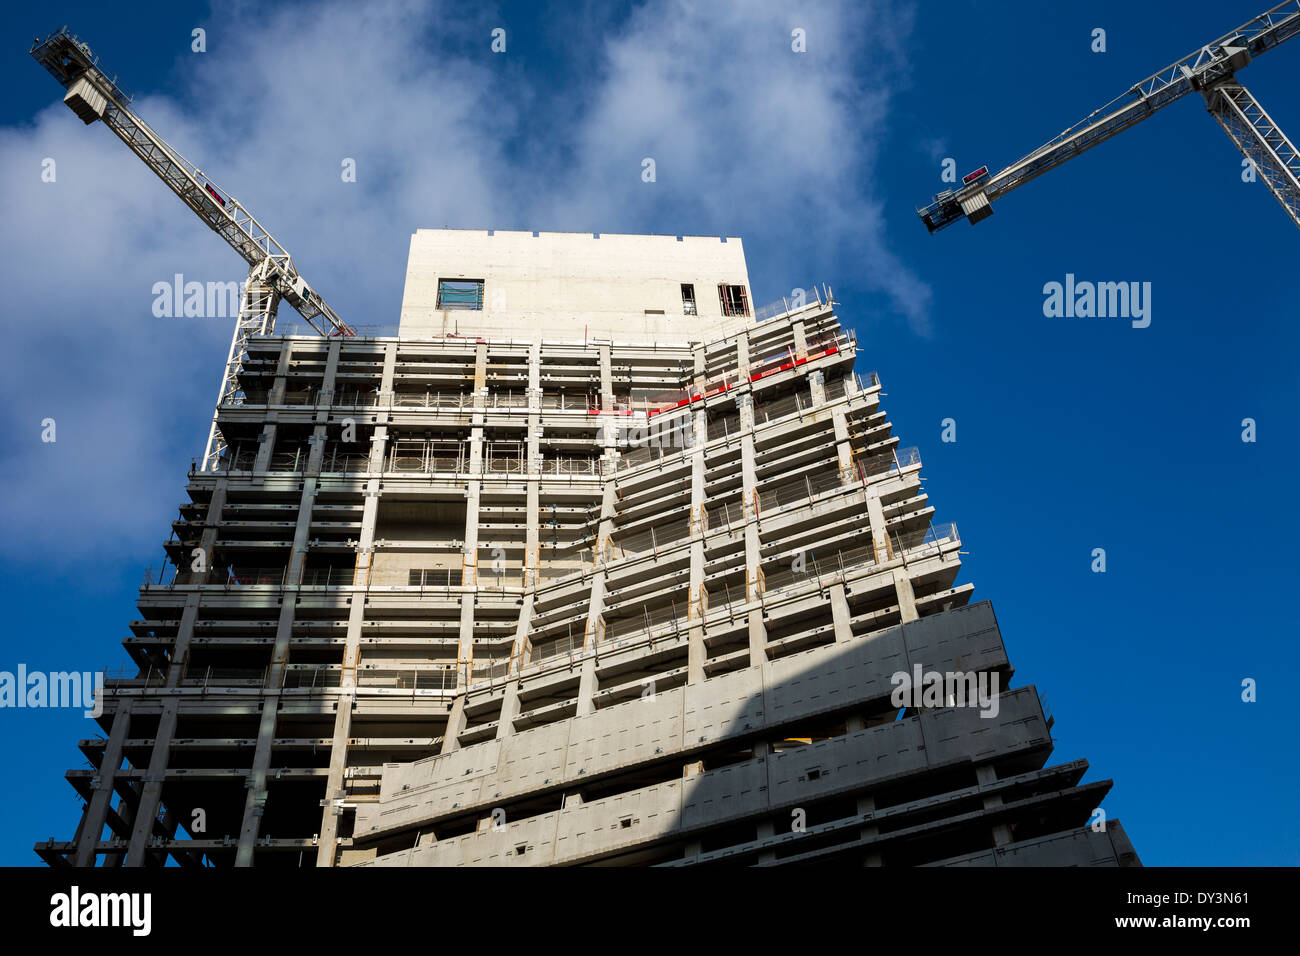 The new TATE modern building under construction. March 1, 2014. London, UK. - Stock Image